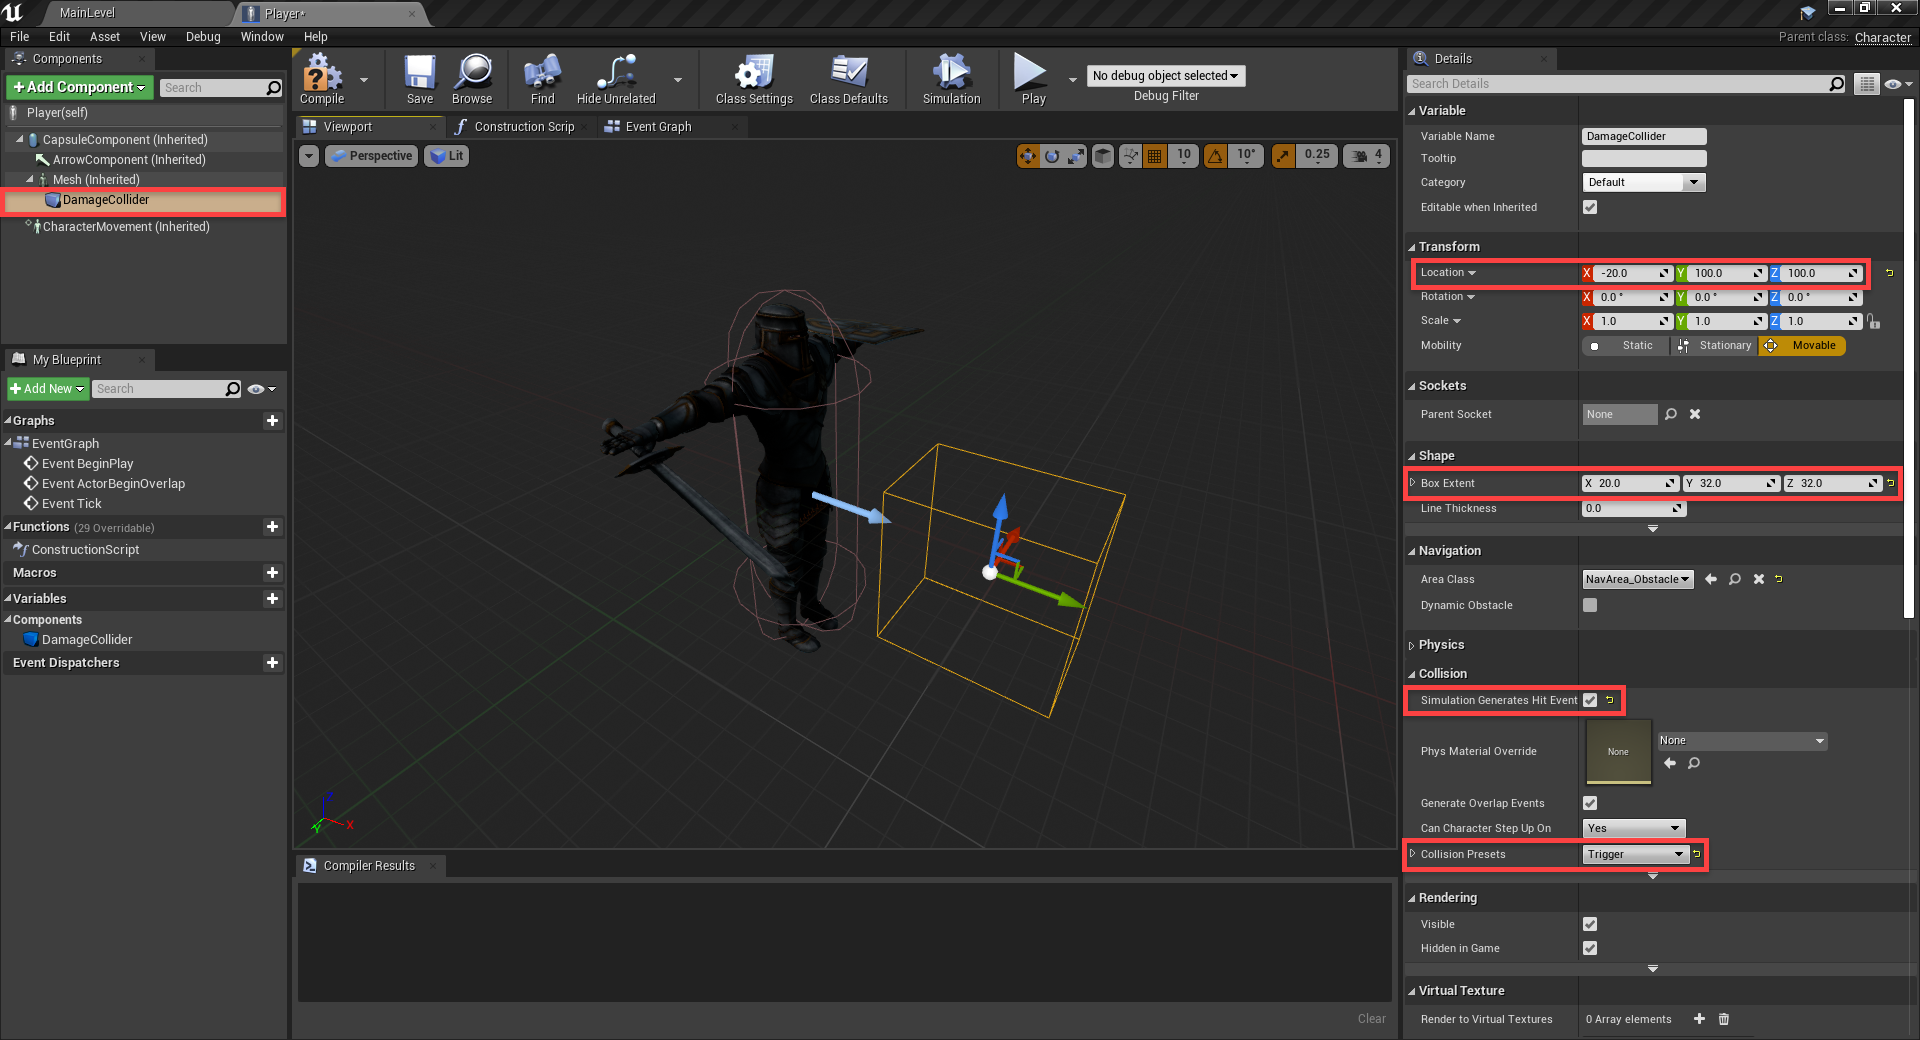 Damage collider added to Player Blueprint in Unreal Engine